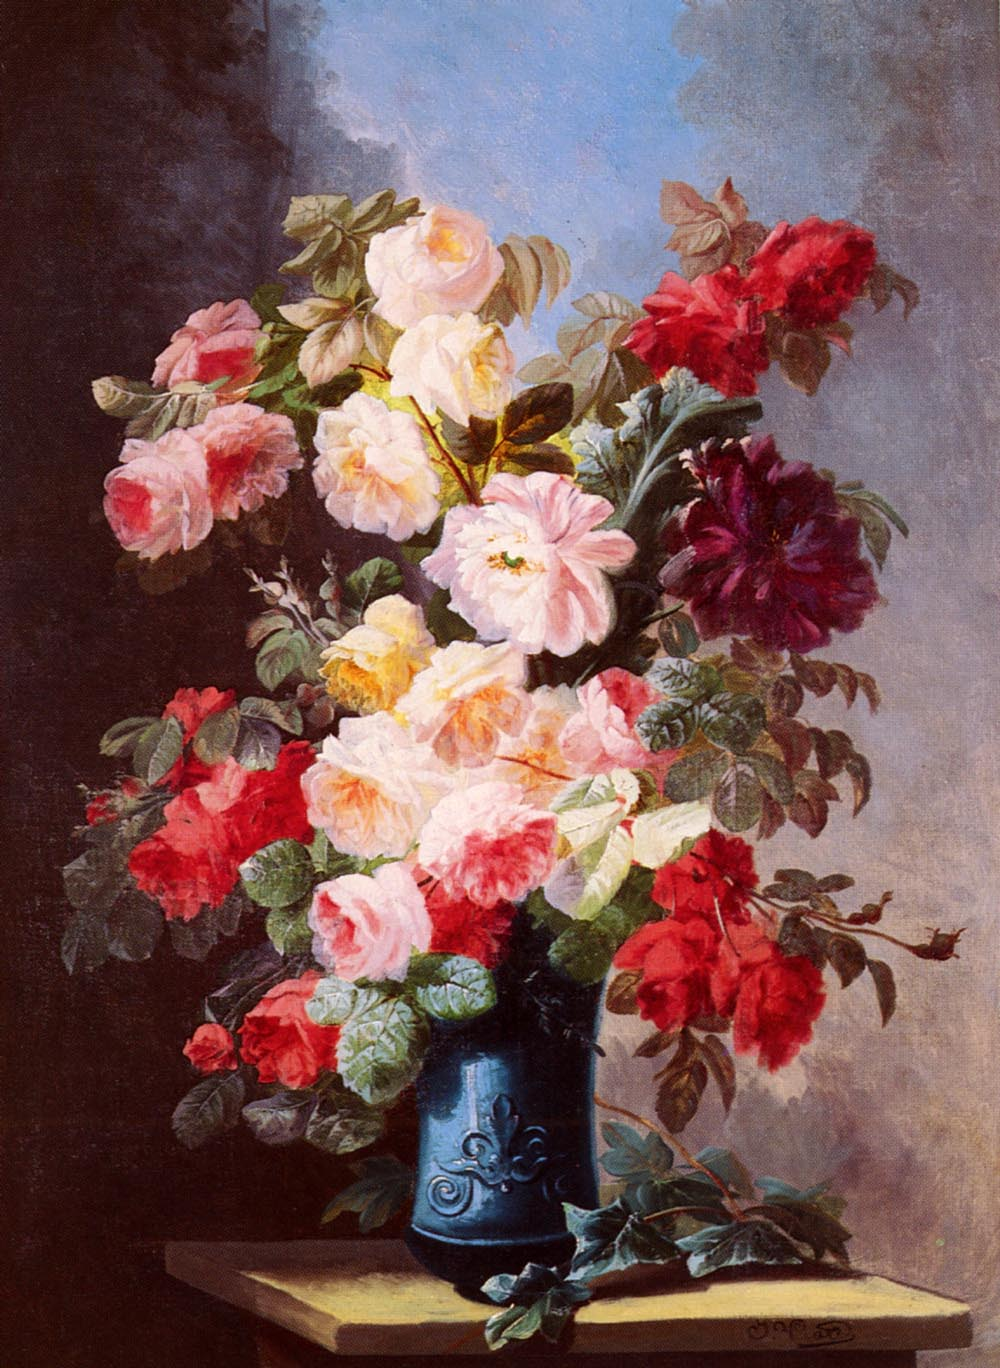 A Still Life With Roses And Peonies In A Blue Vase :: Georges Viard - flowers in painting ôîòî